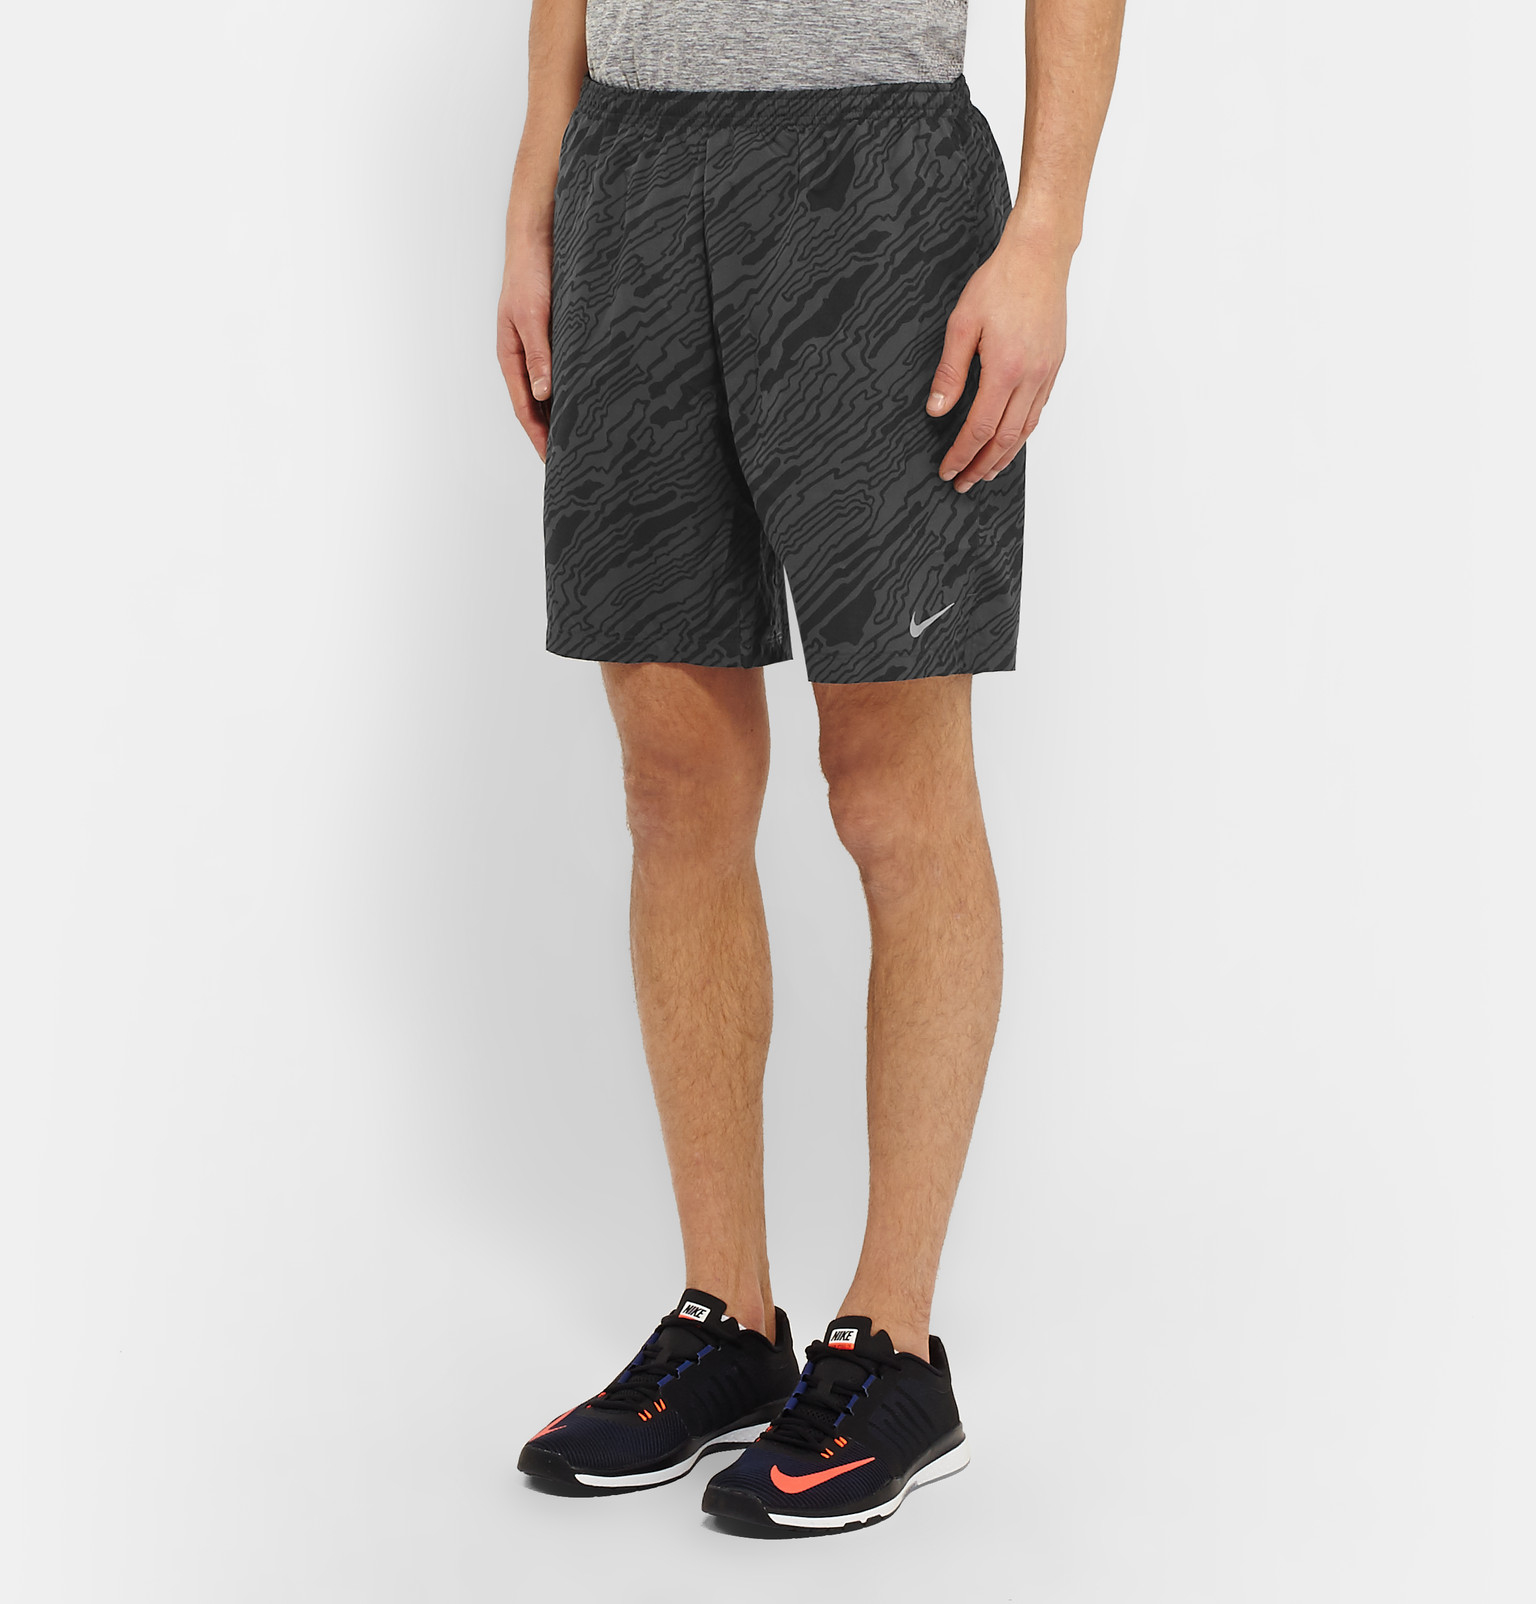 c4866c452169c In Men Distance Nike Lyst Shorts Fit Printed Elevate For Gray Dri xATOqYazw